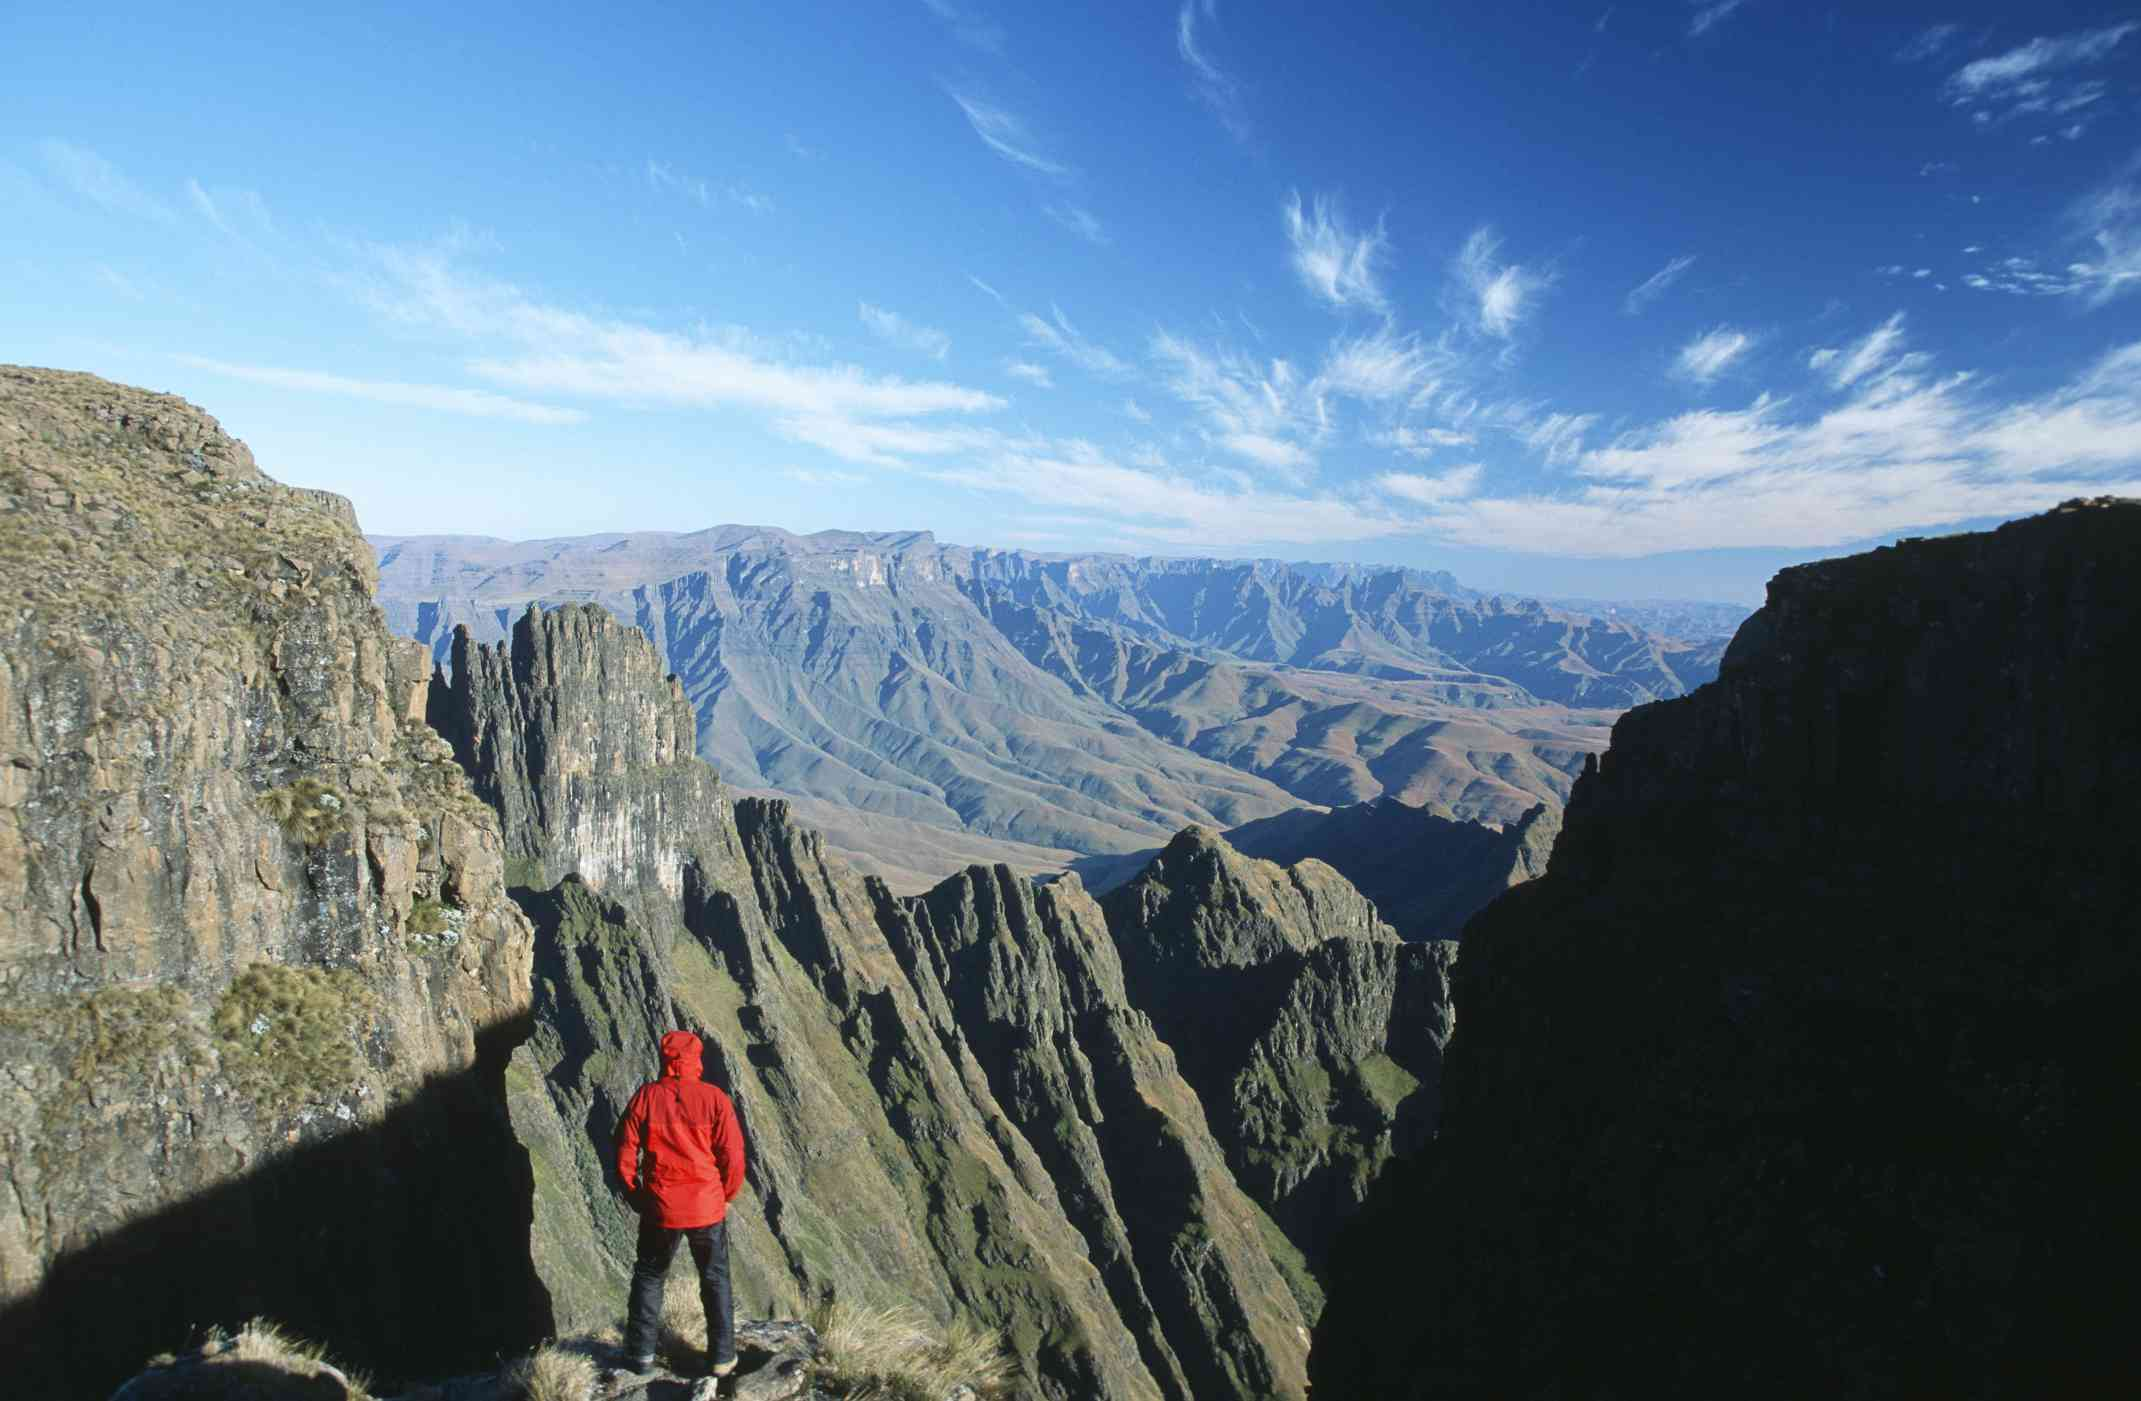 View from the Summit, Drakensberg Mountains